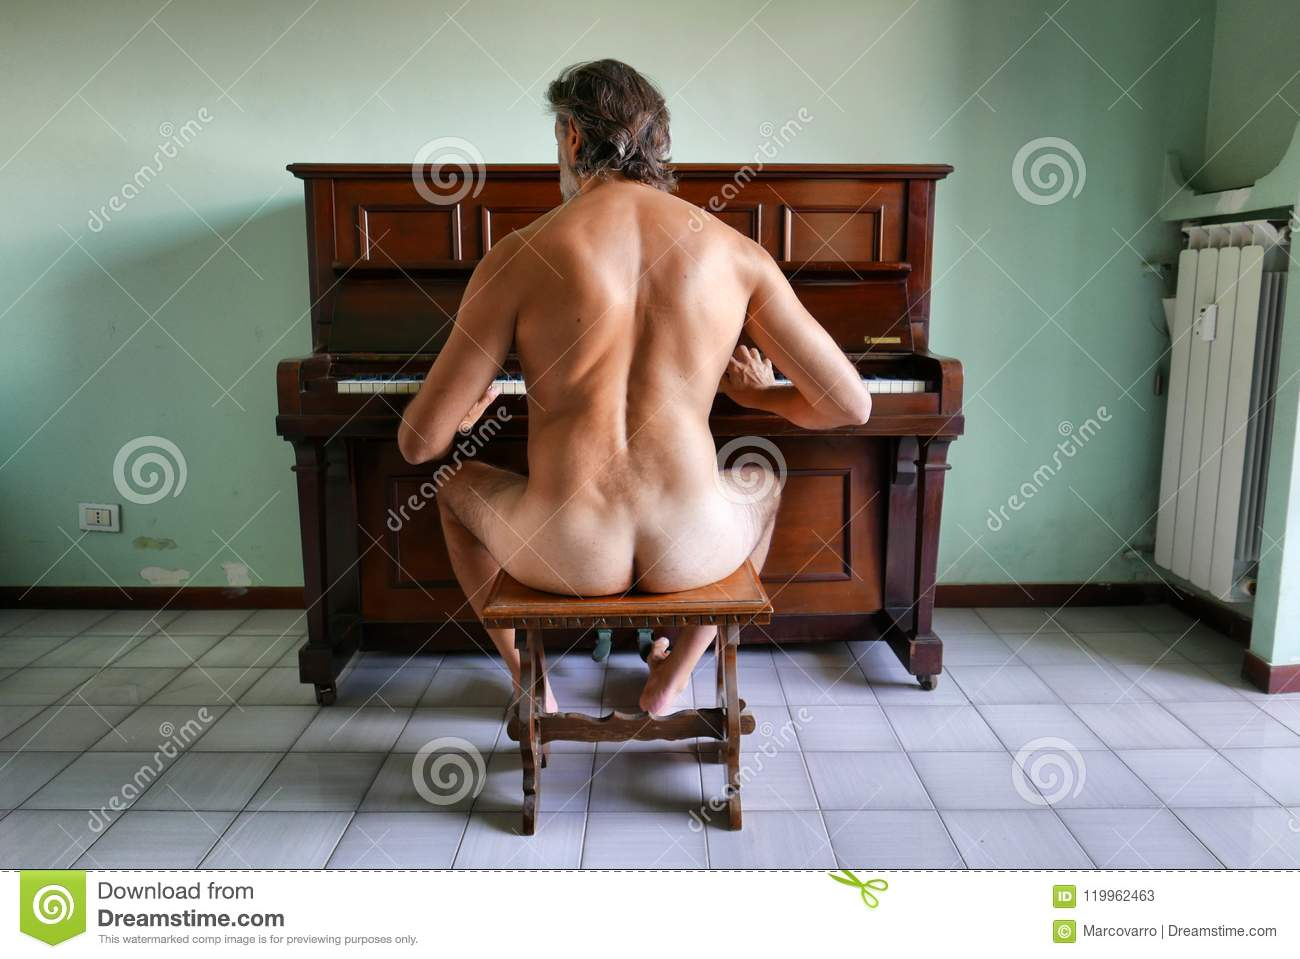 Pictures of classic mature male nudes